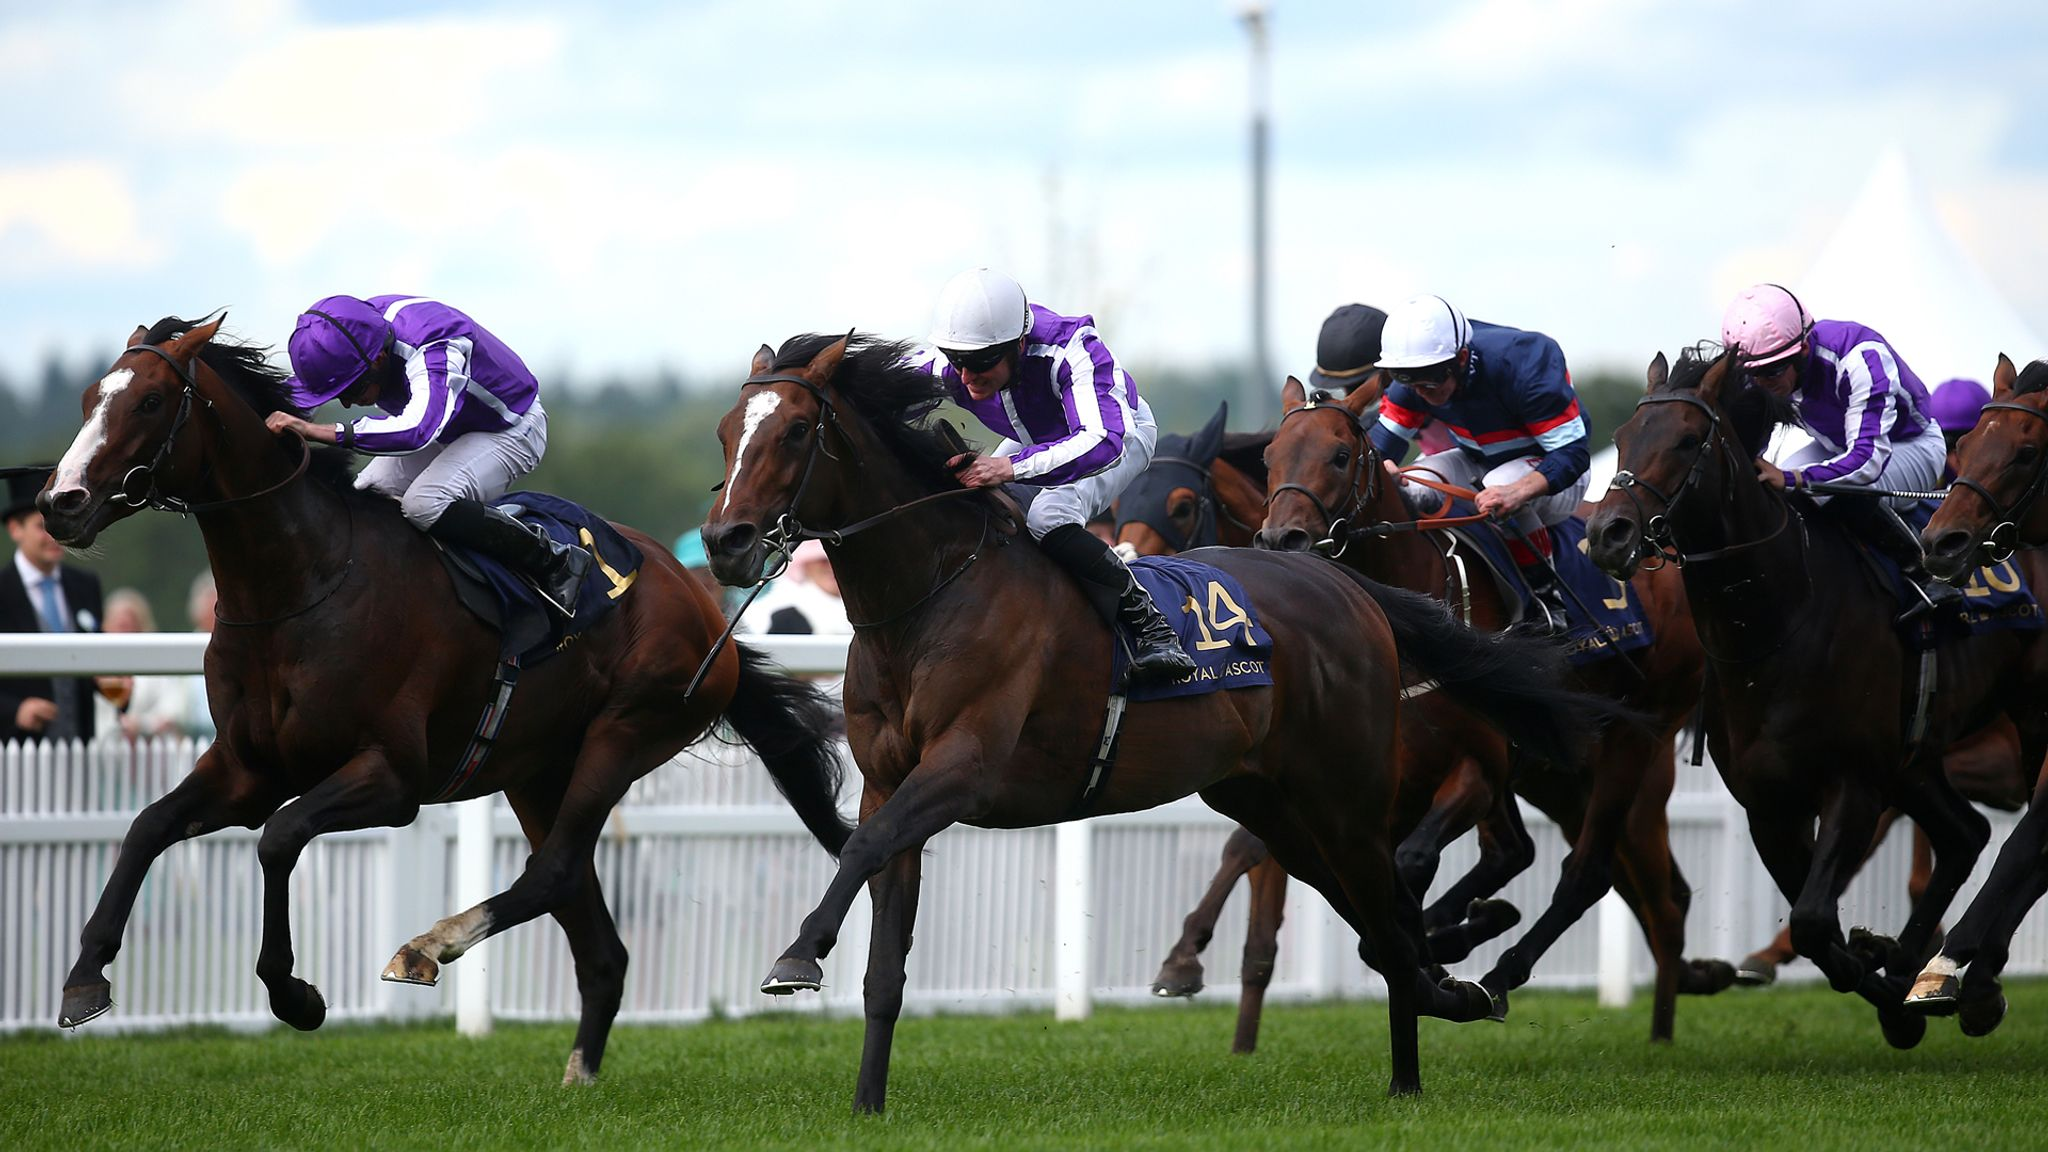 Mick Fitzgerald previews the Long Distance Cup at Ascot